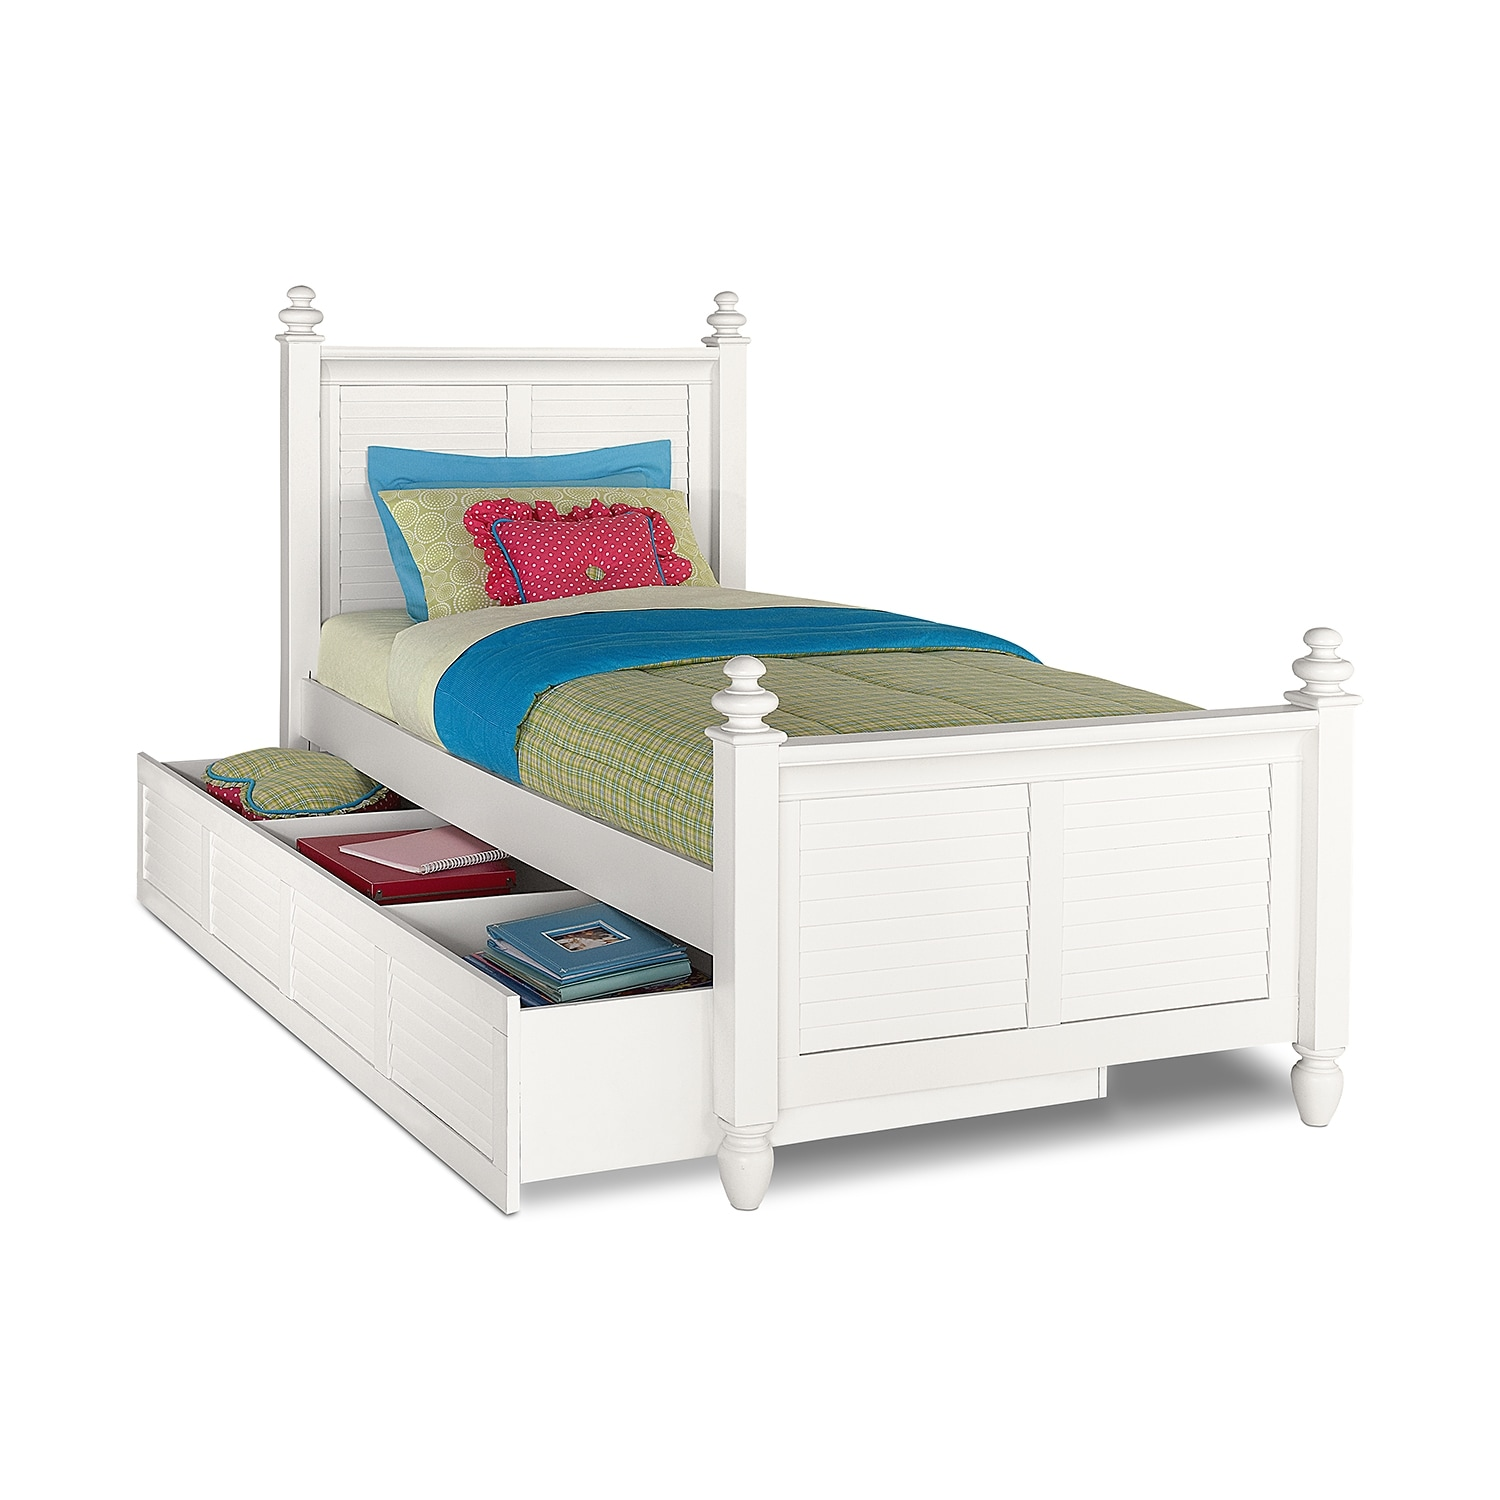 Seaside Twin Bed with Trundle White Value City Furniture : 278385 from www.valuecityfurniture.com size 1500 x 1500 jpeg 189kB